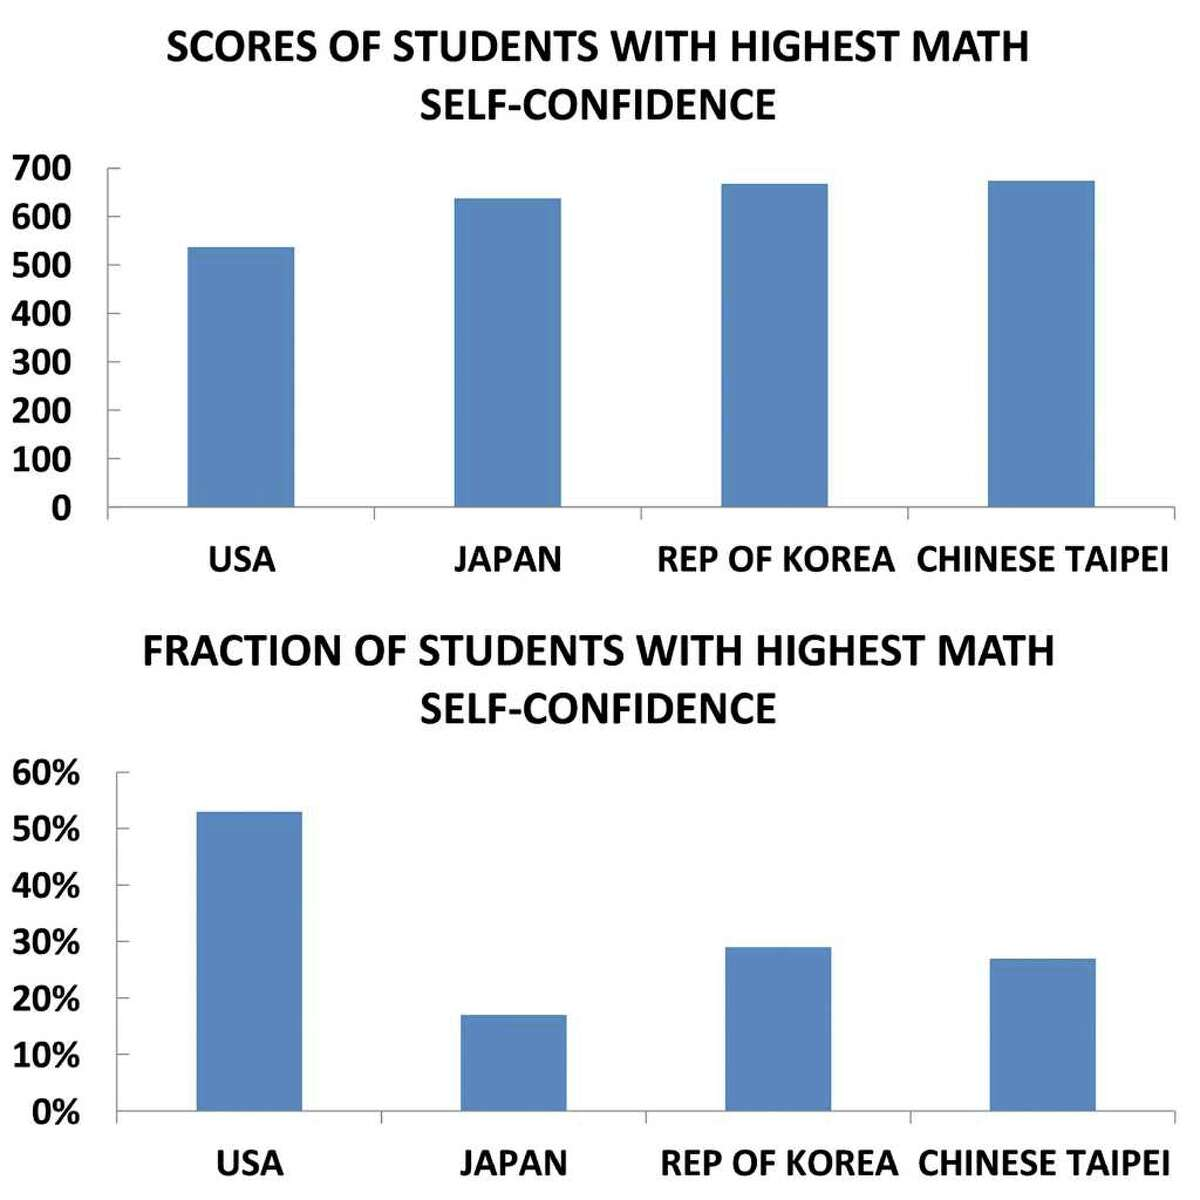 US eighth graders with the highest self-confidence in math in 2007 were outscored by Asian students with less self-confidence. Source: http://timss.bc.edu/timss2007. Graphic by Forrest M. Mims III.